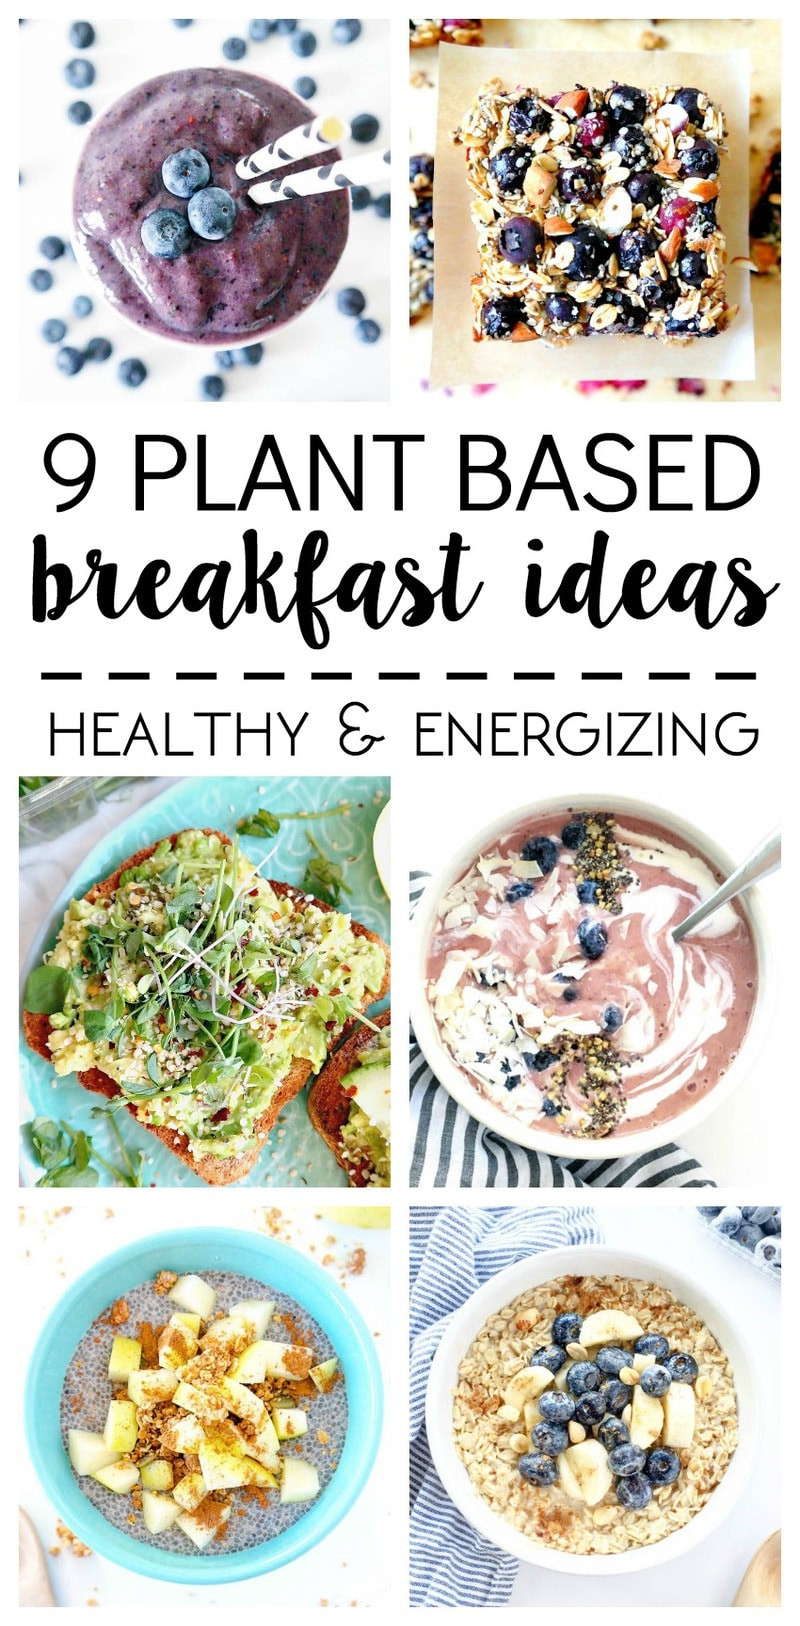 Plant Based Breakfast Recipes  What I Ate 9 Plant Based Breakfast Ideas The Glowing Fridge